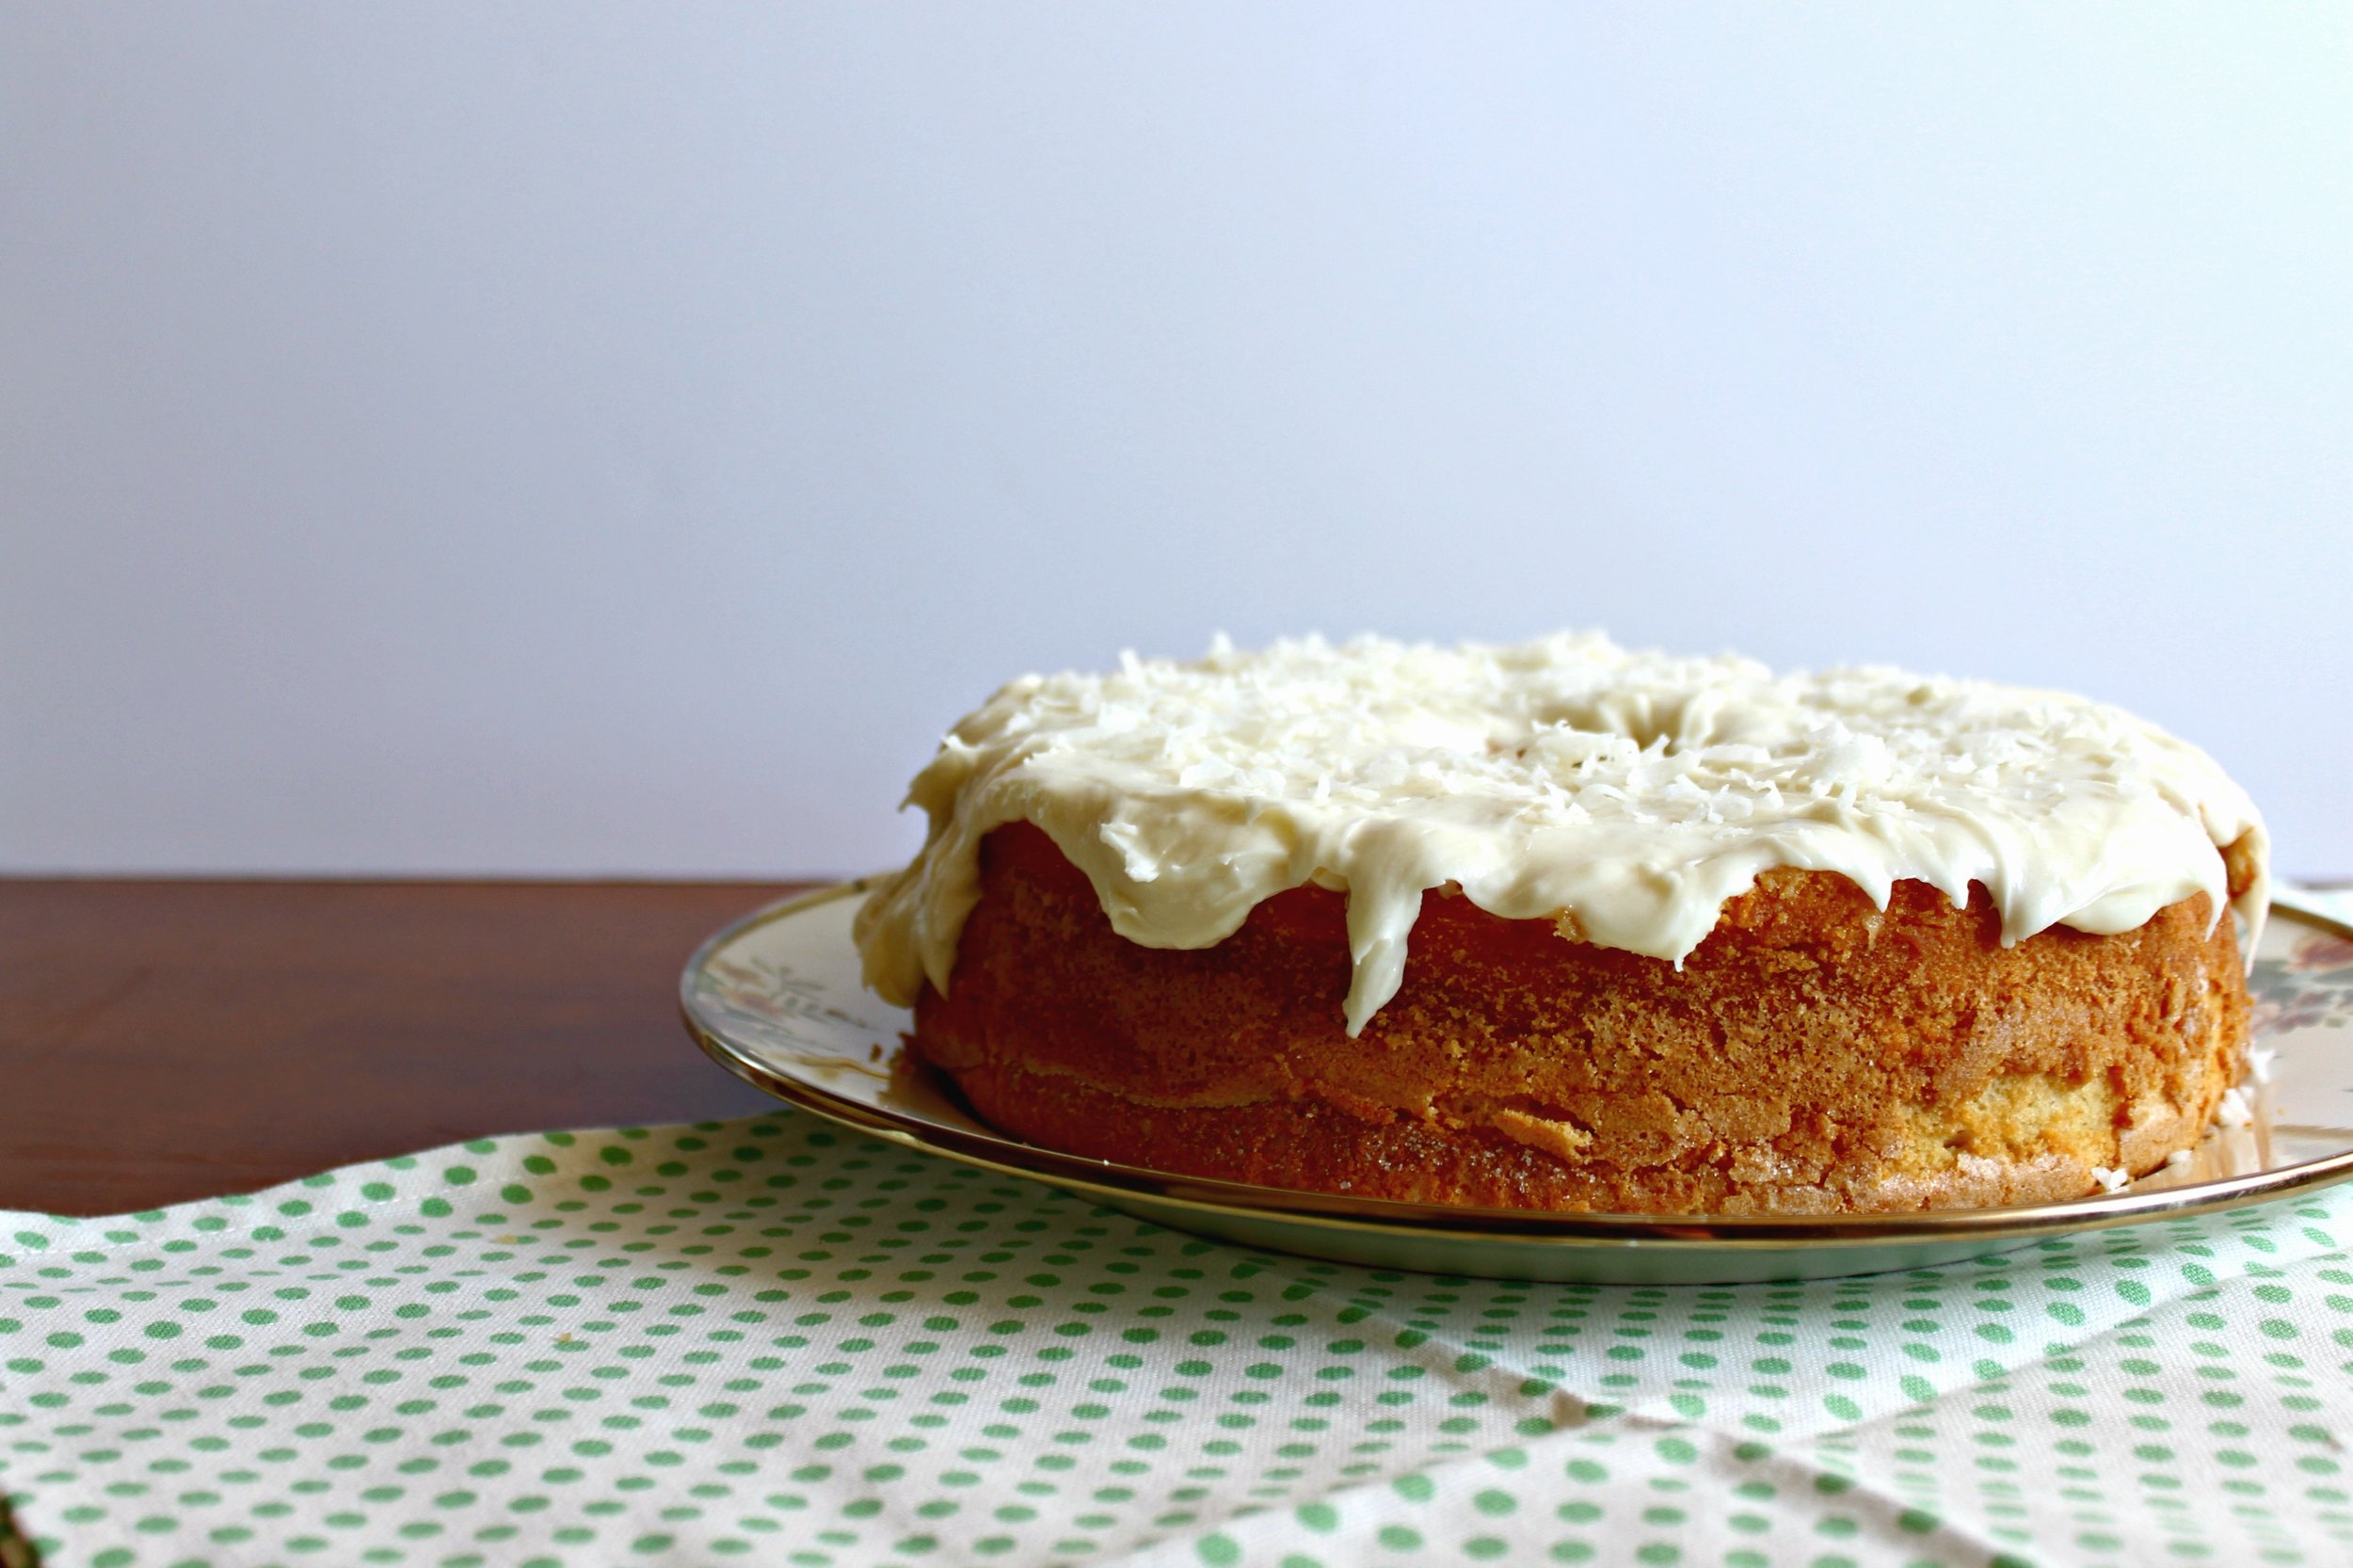 Around the World in 28 Cakes: Louisiana Crunch Cake, a Southern coconut pound cake